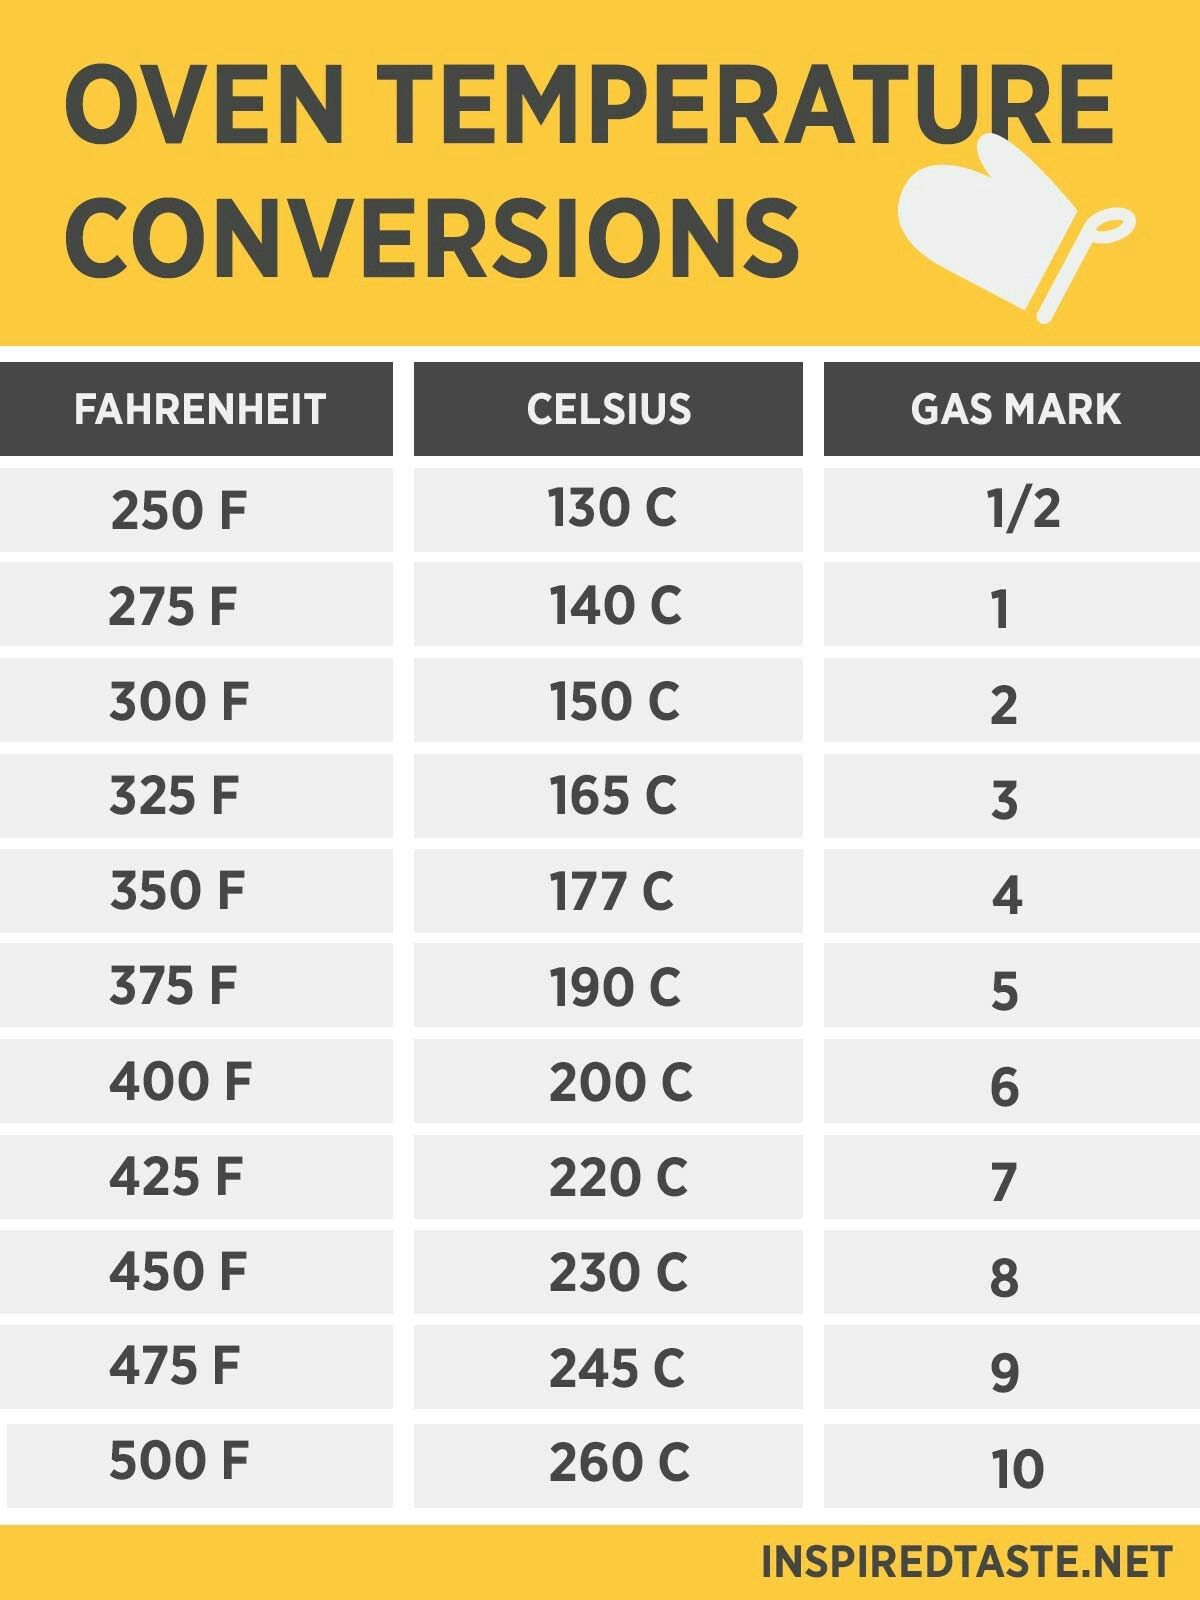 Oven Temperature Conversion Chart  Fahrenheit To Celsius To Gas